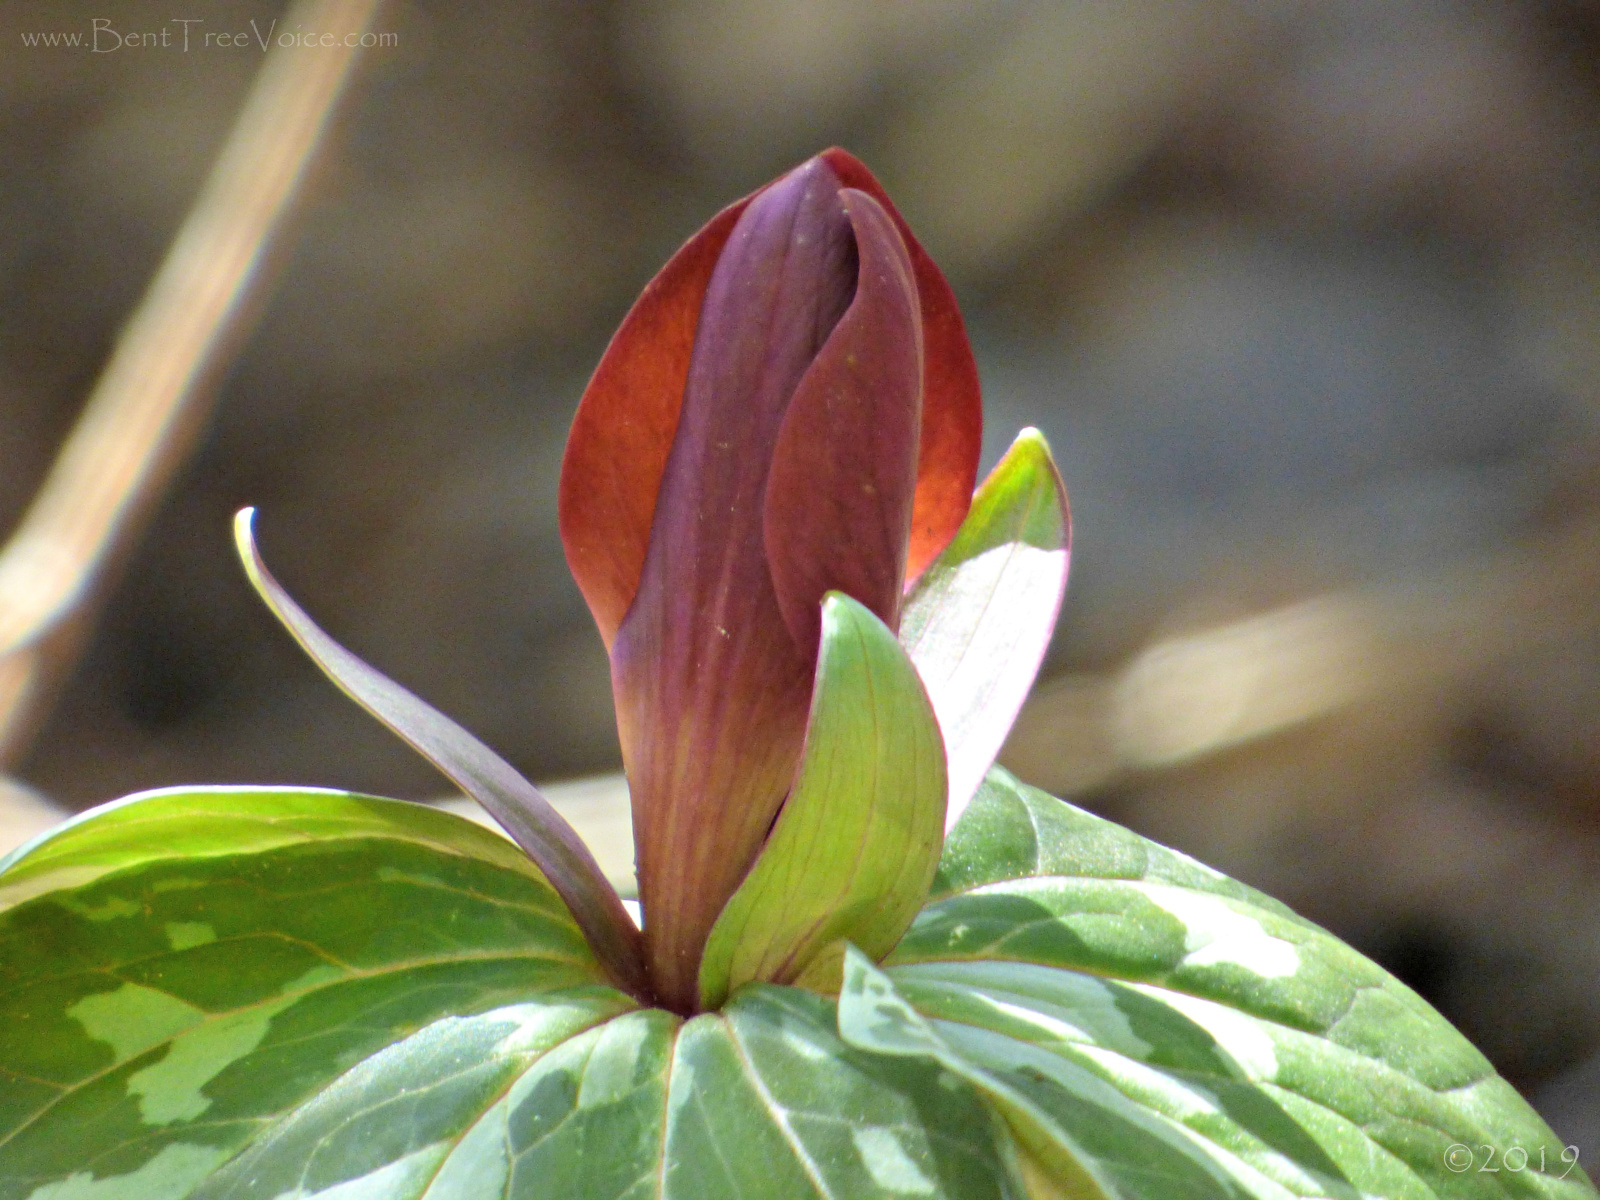 March 7, 2019 - Trillium cuneatum in Bent Tree